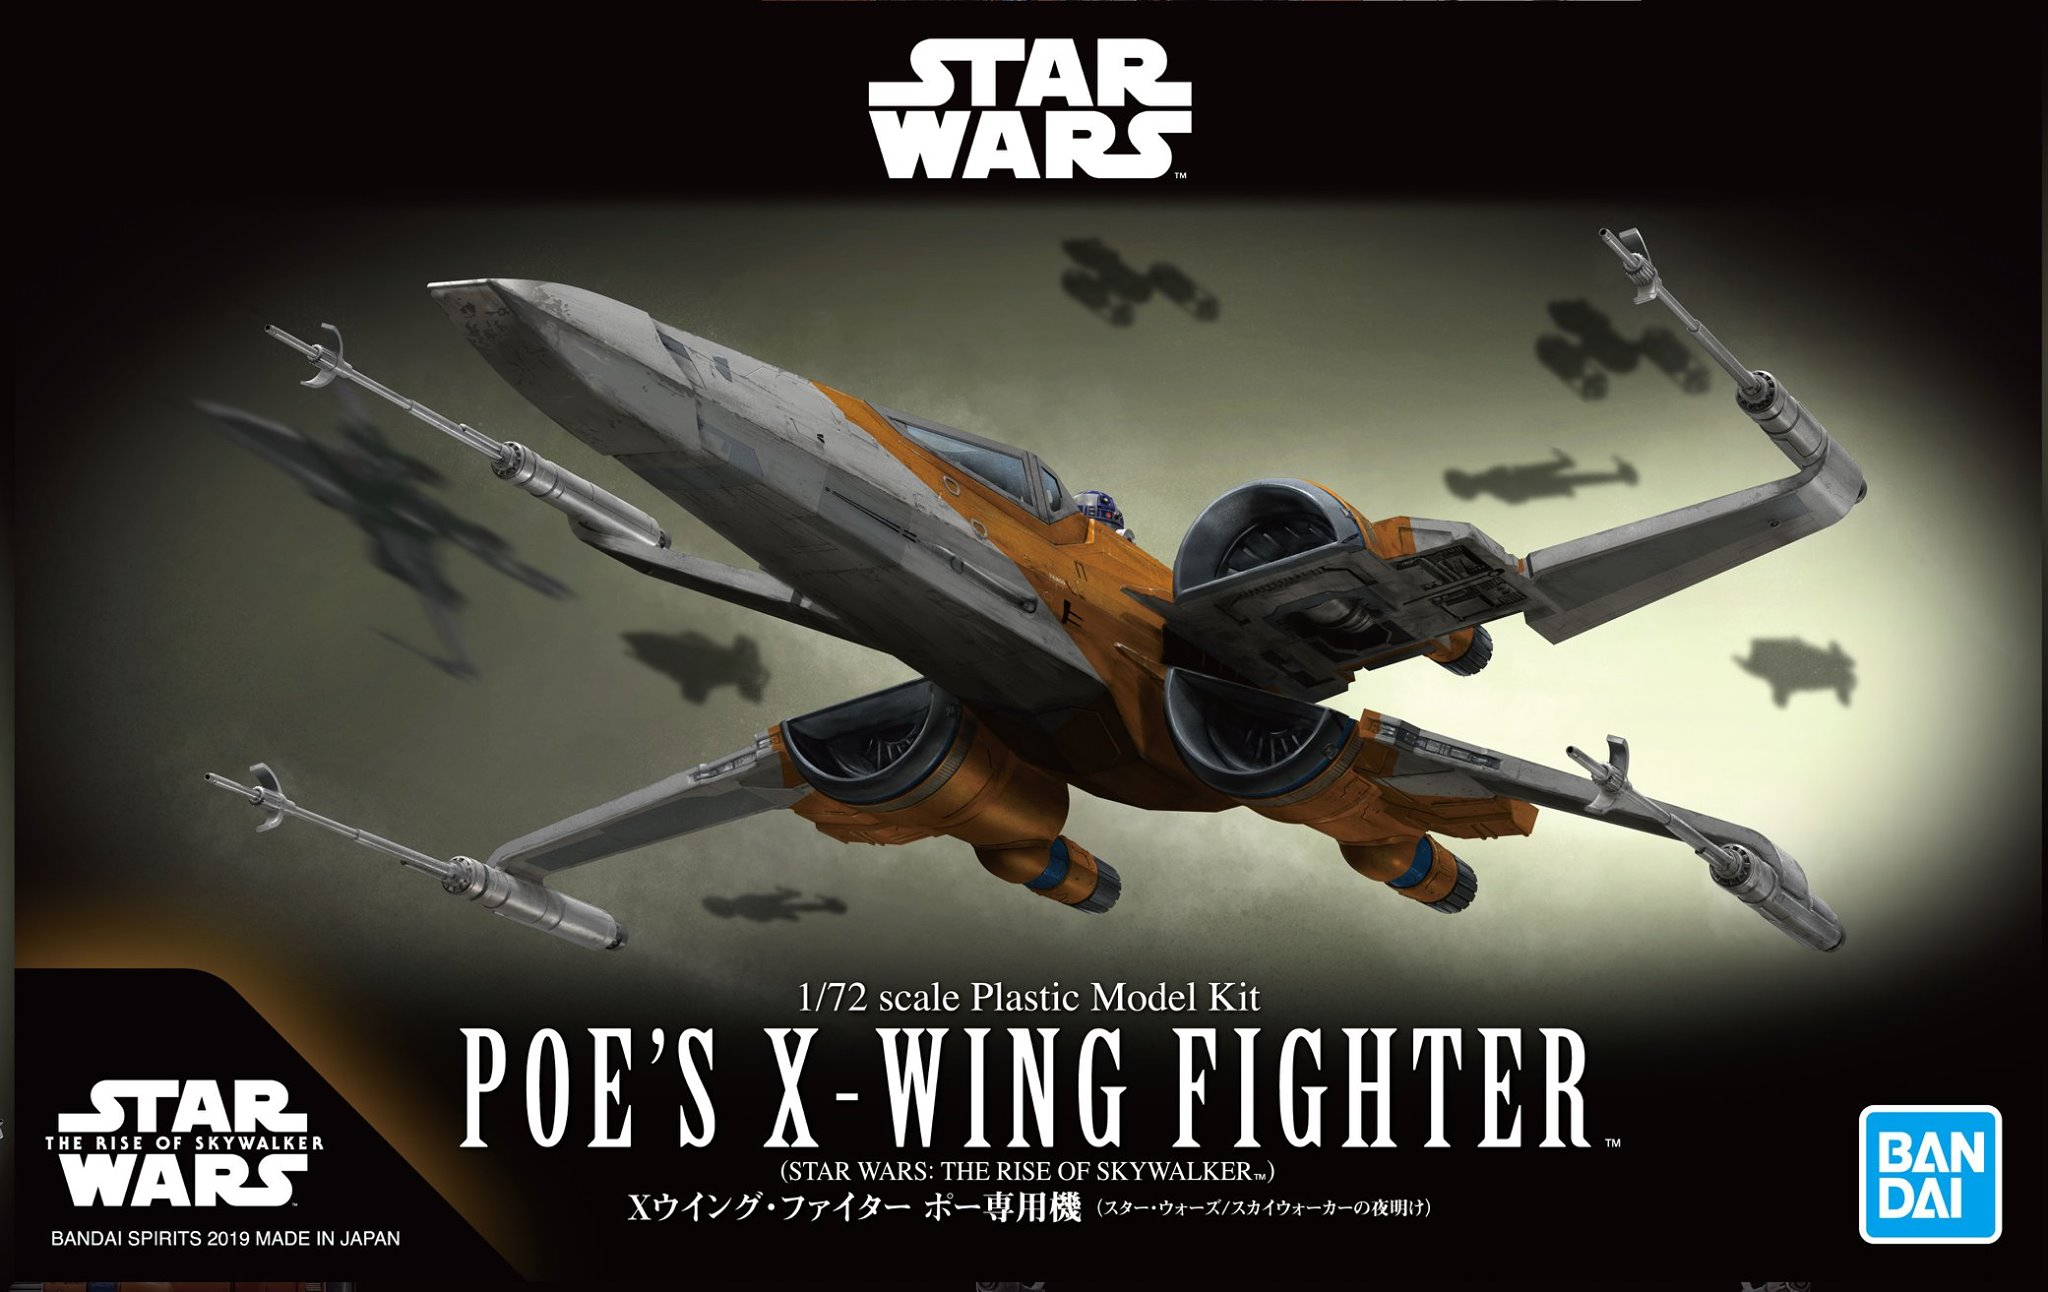 Star Wars Bandai Model Kit: 1/ 72 POES X-WING FIGHTER (STAR WARS: THE RISE OF SKYWALKER)